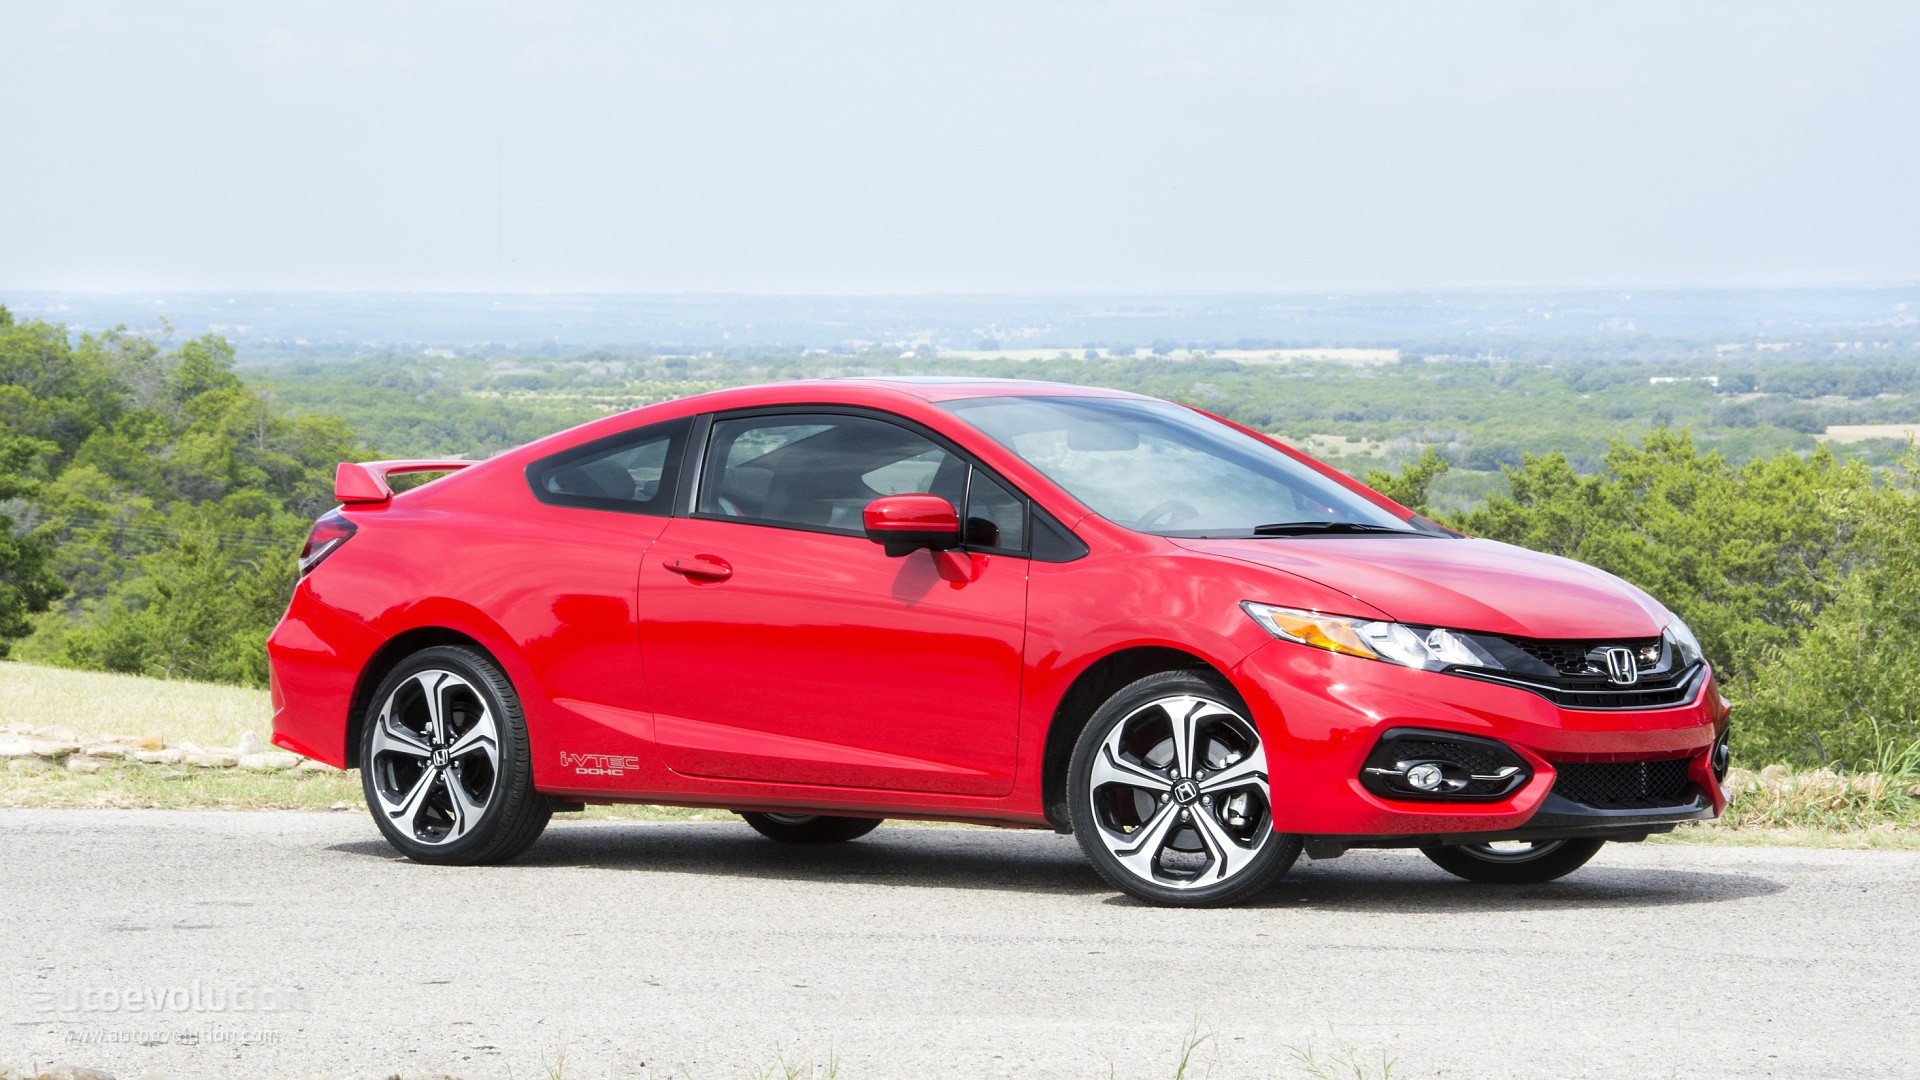 Car Pictures Wallpaper Net Speed 2015 Honda Civic Si Coupe Review Autoevolution